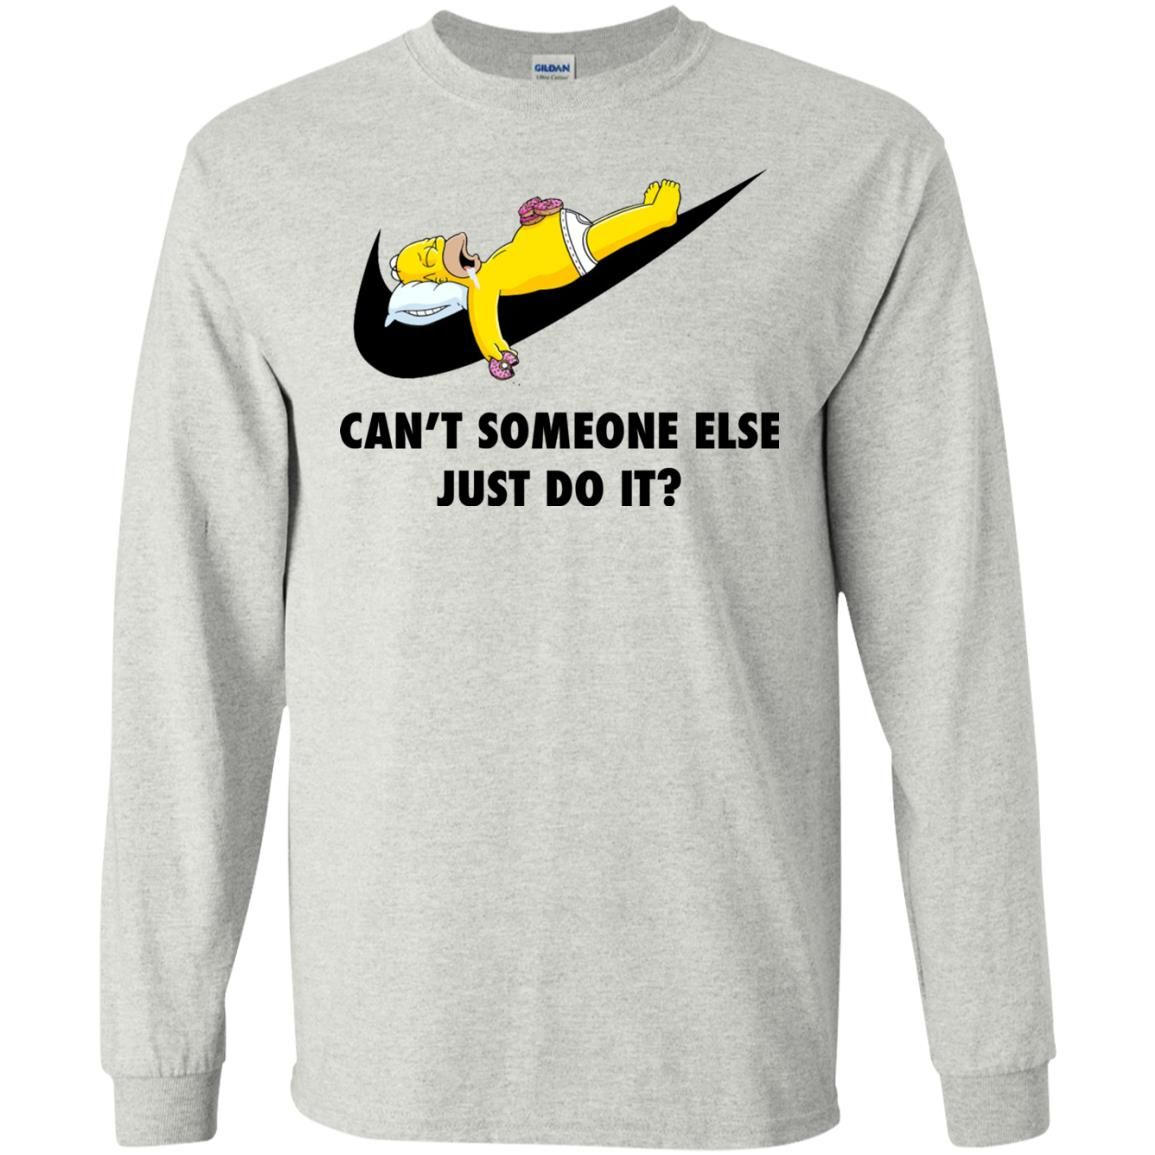 image 1404 - The Simpsons: Can't someone eles just do it shirt, tank, hoodie